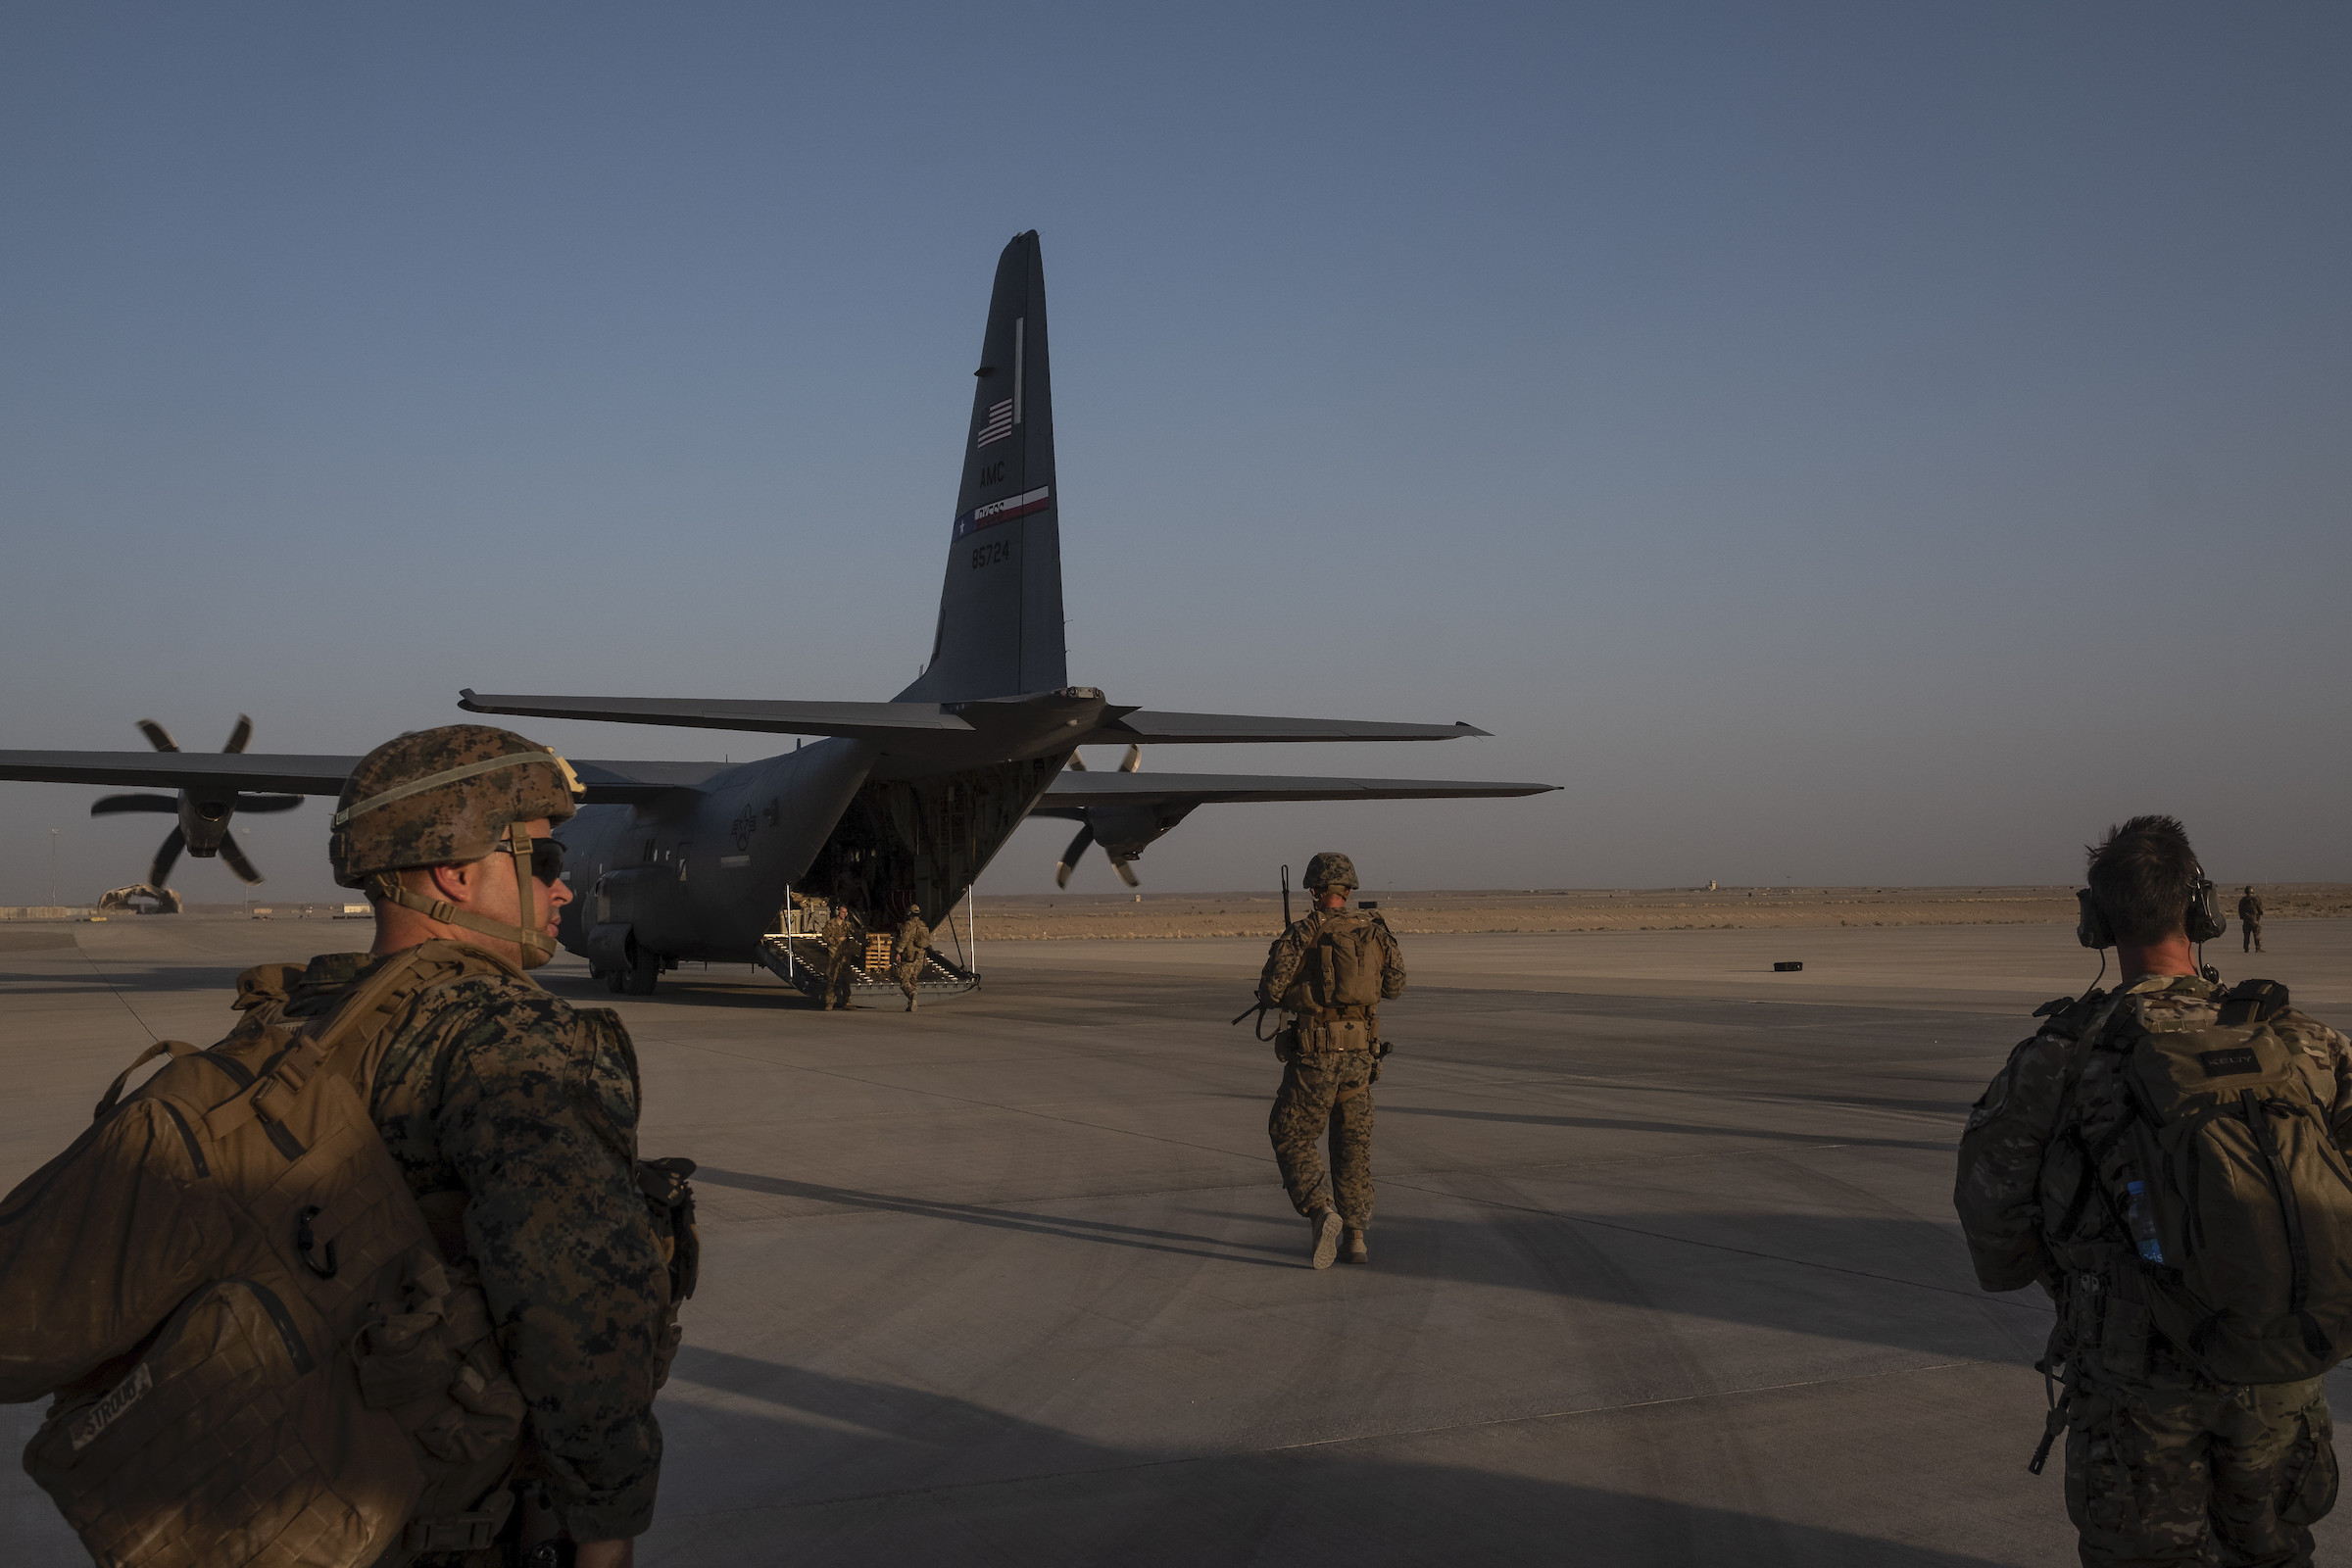 American military personnel at Camp Shorabak in Helmand Province, Afghanistan, Sept. 26, 2019.